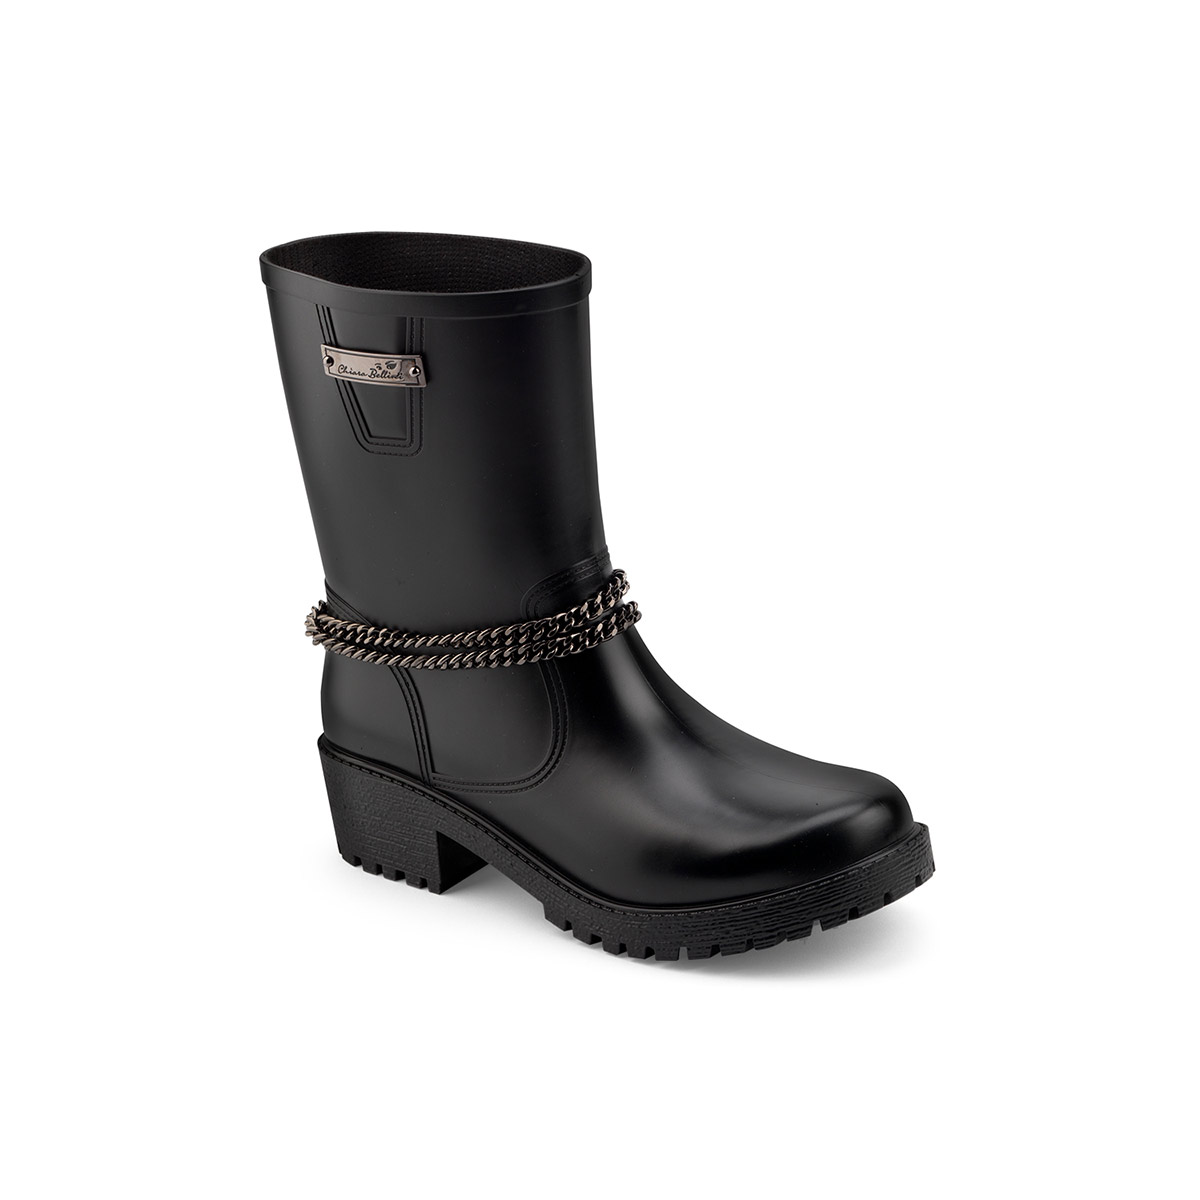 Pvc biker low boot with chain